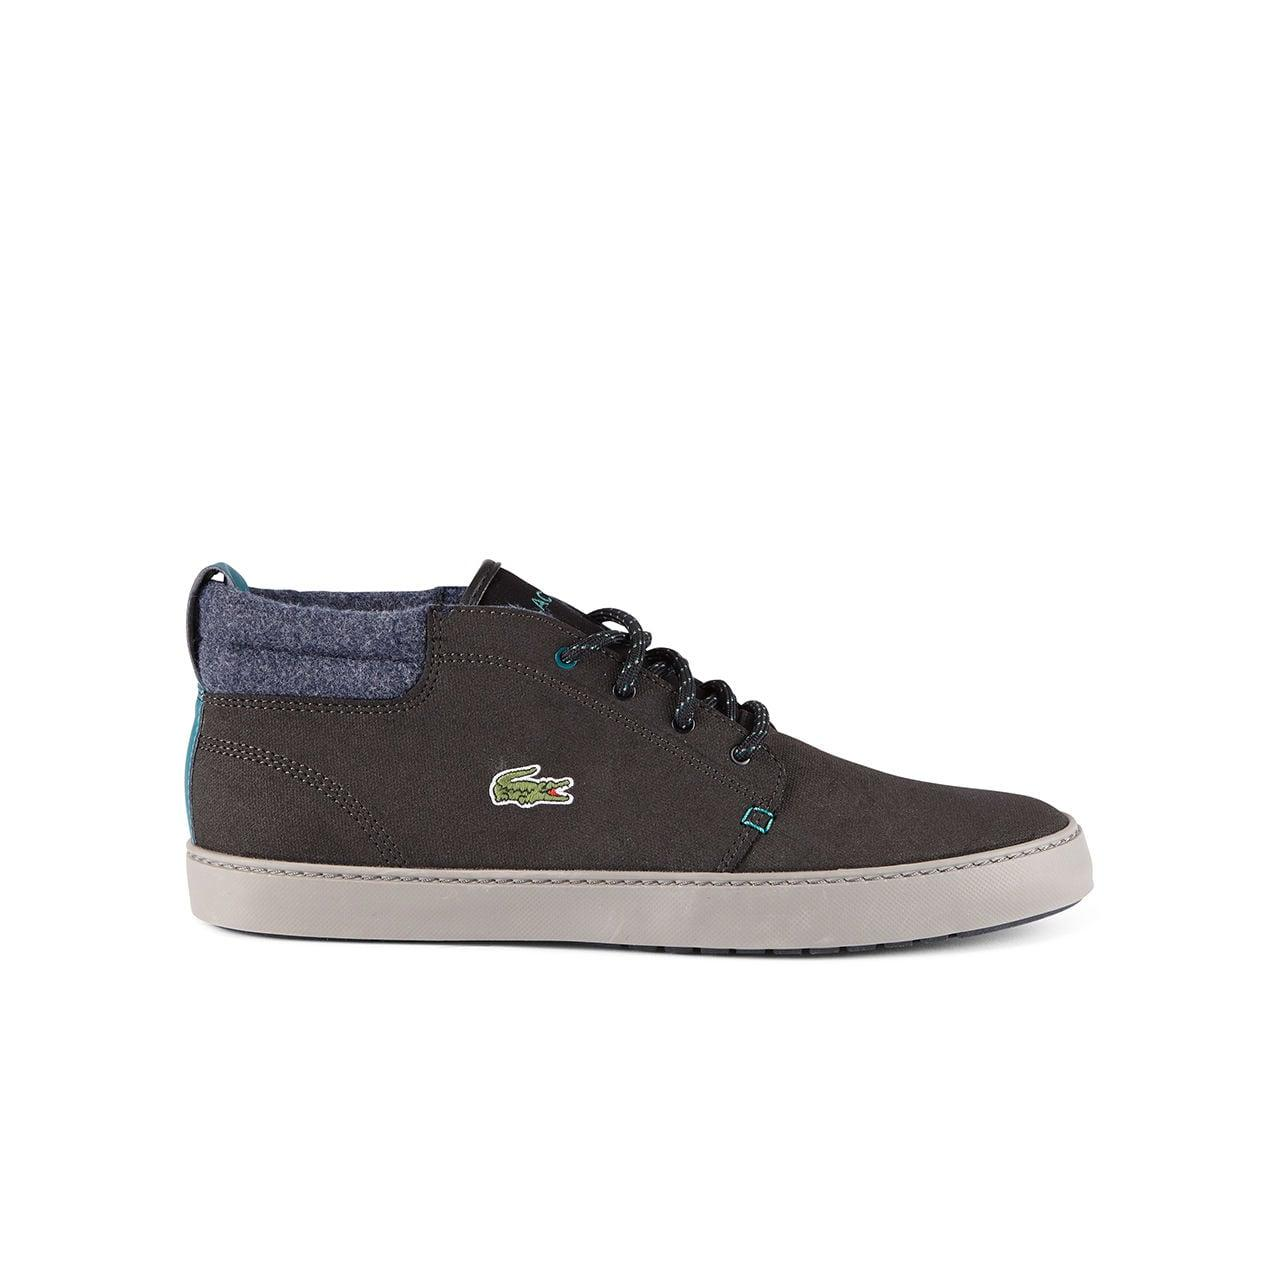 f1c5ef51aec2 Lyst - Lacoste Ampthill Terra Chukka Leather Sneakers for Men